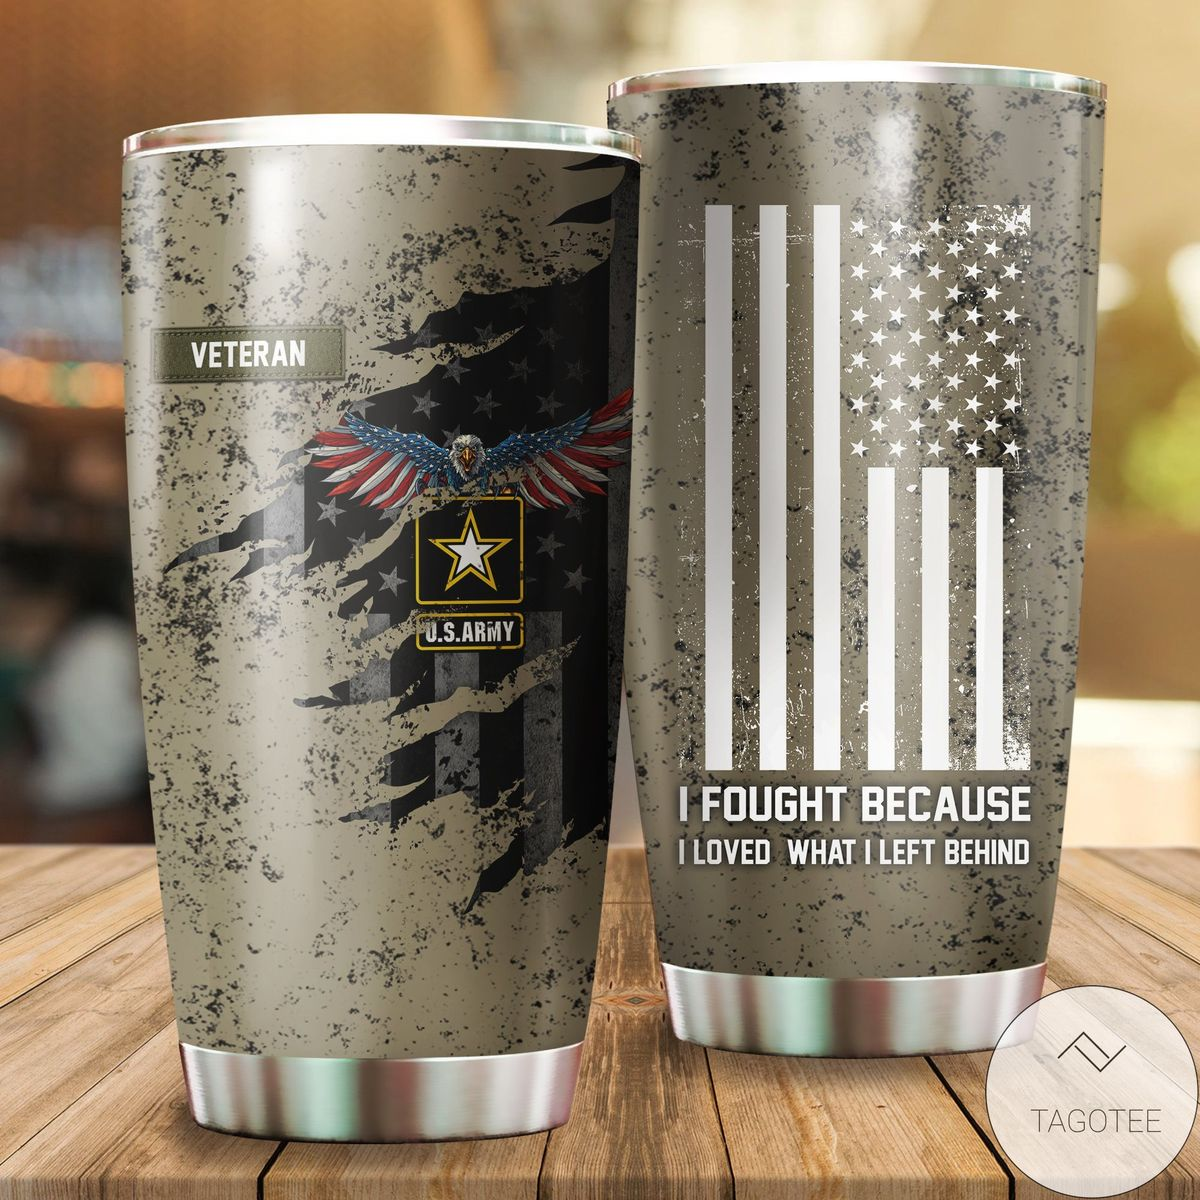 Veteran Us Army Eagle I Fought Because I Left What Behind Tumbler